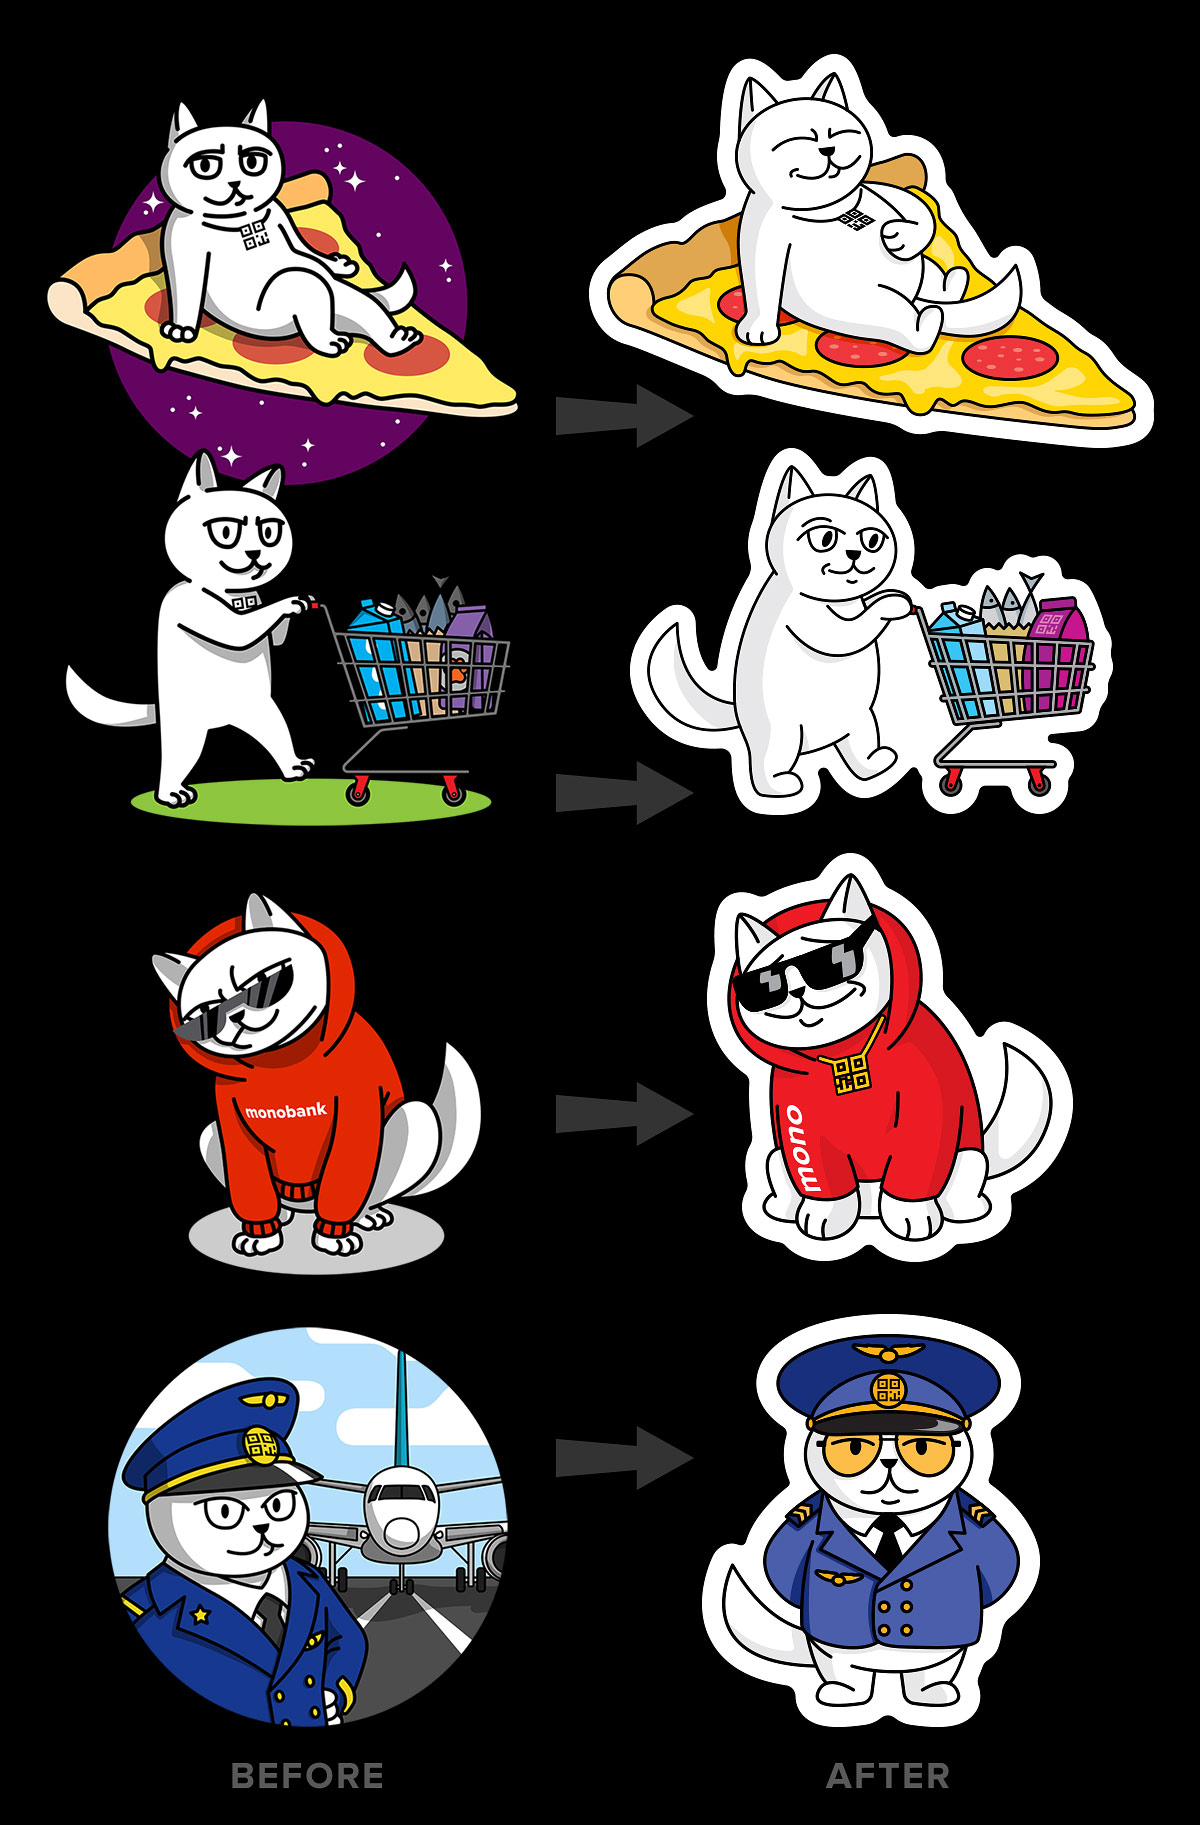 Bank mascot QR cat redesign for stickers for points of sales, where one can get cashback with a monobank card.